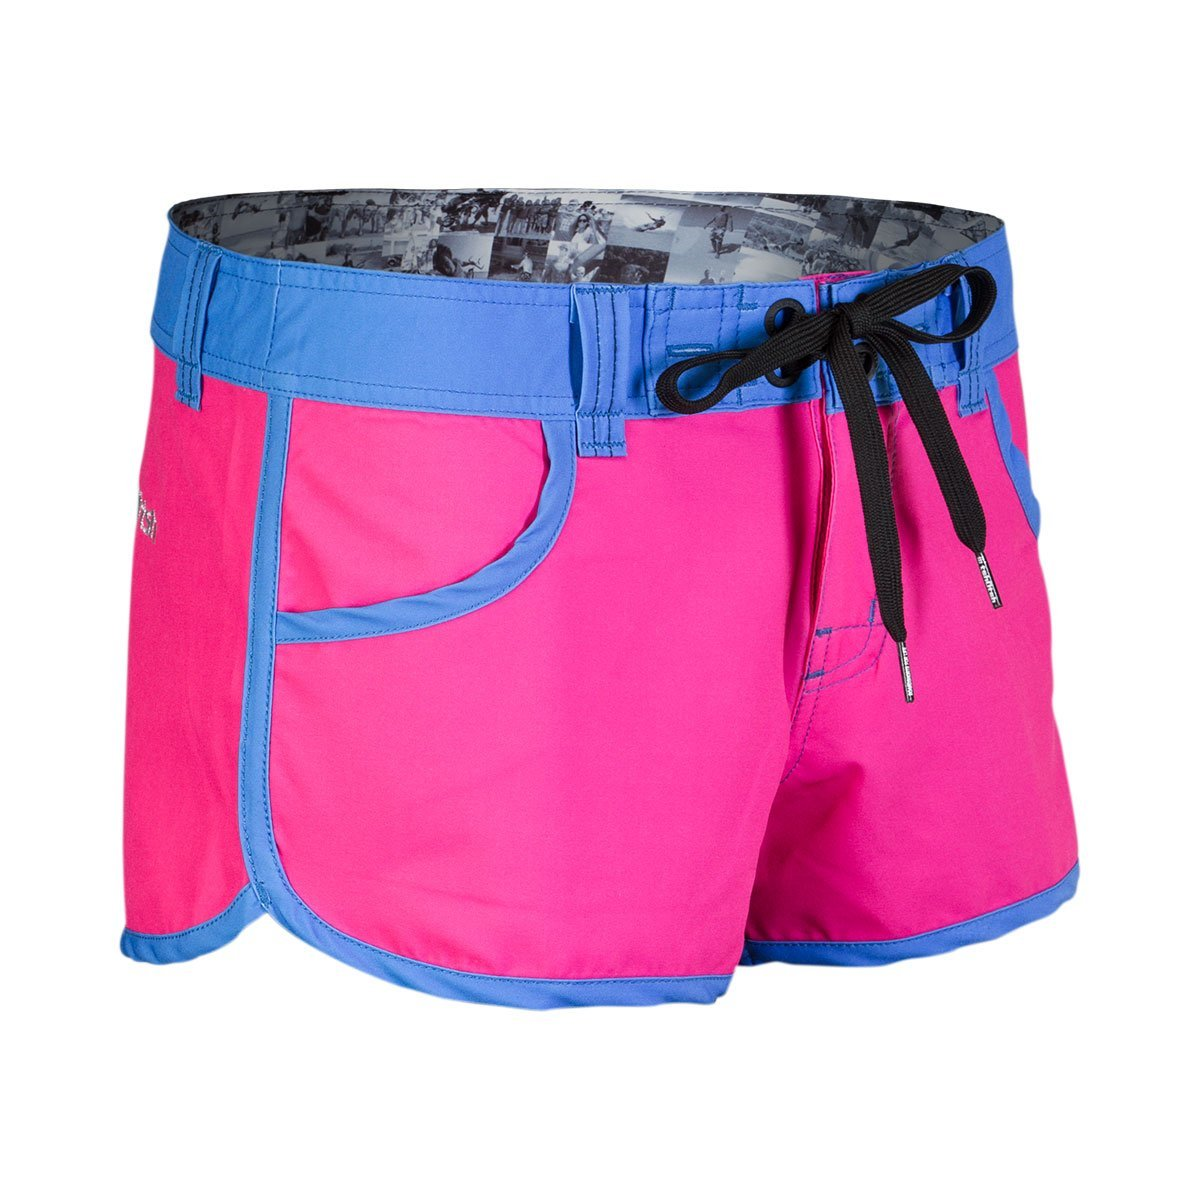 tshOtsh | Women's Daily Pink Board Shorts | Kitesurfing Board shorts